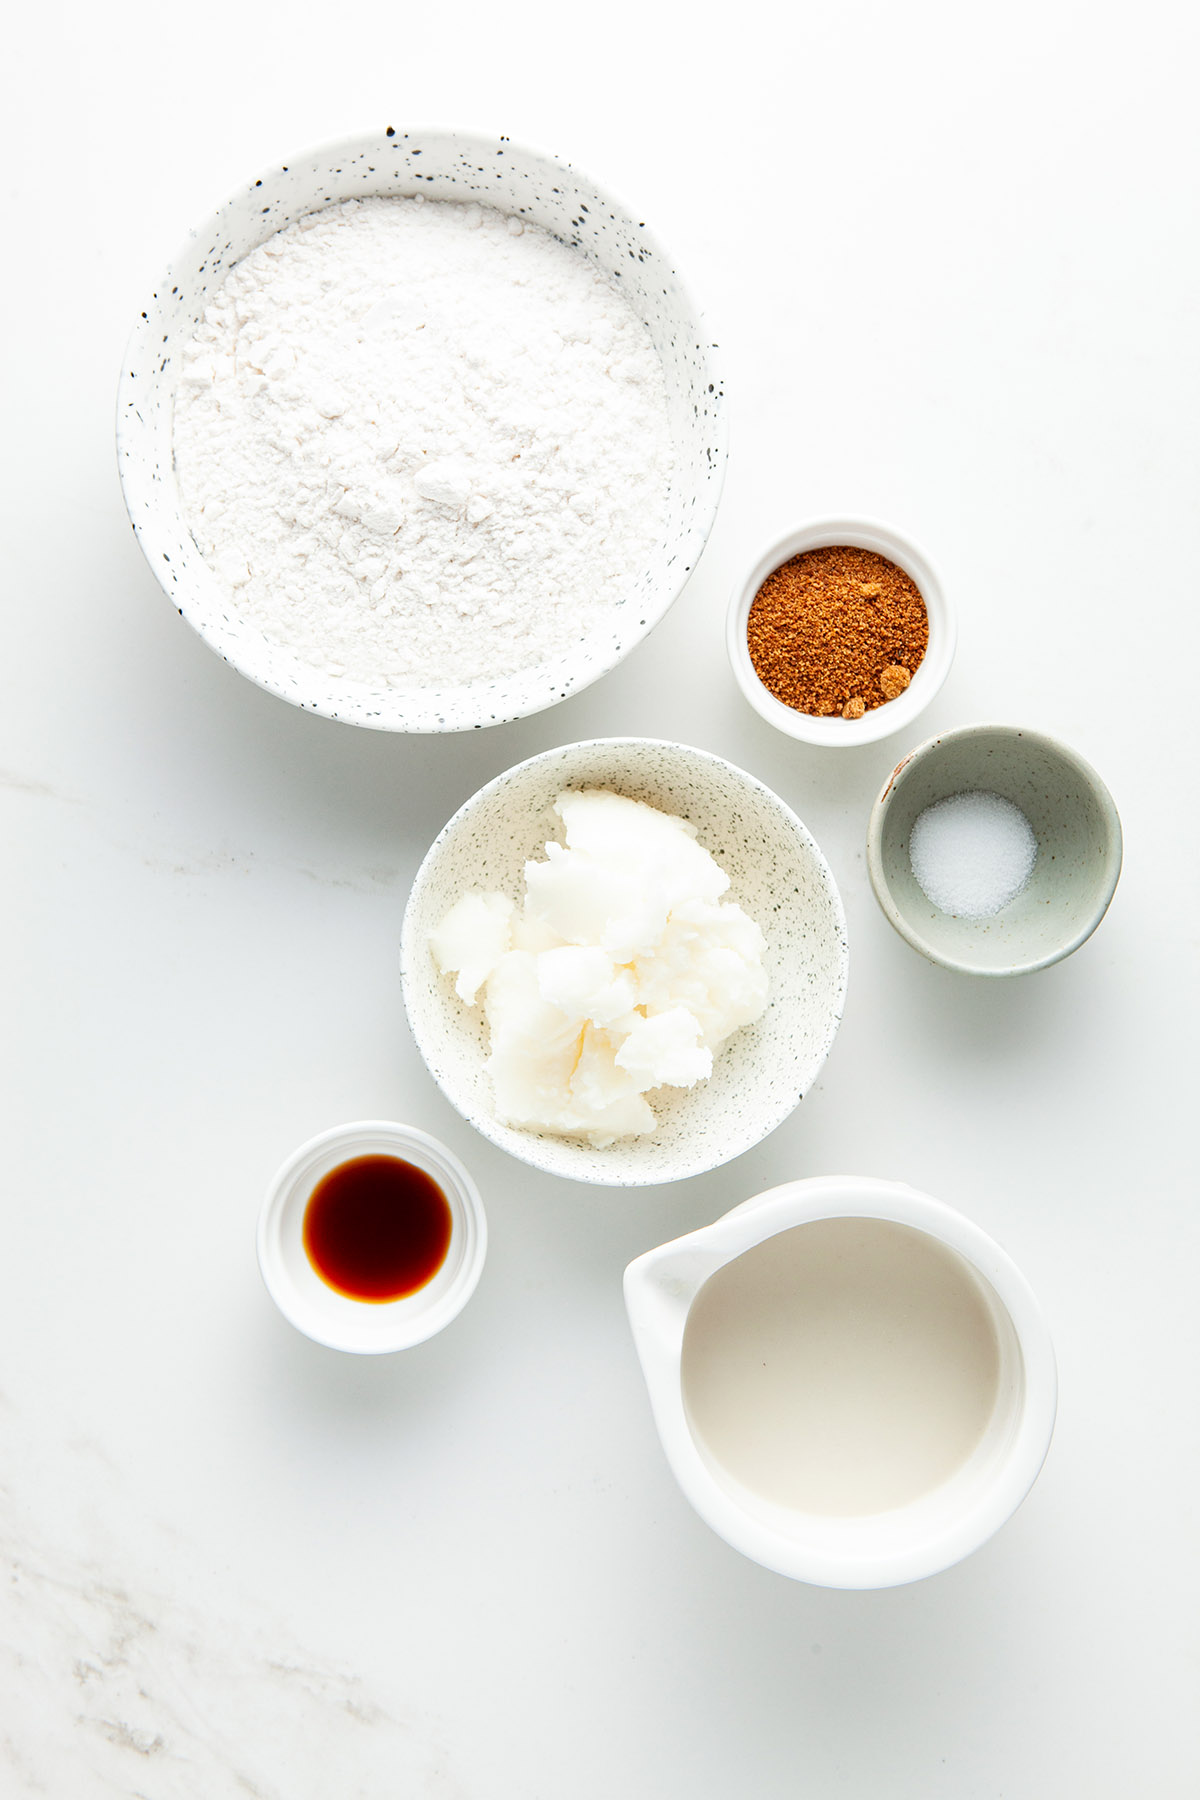 Coconut oil pie dough ingredients.